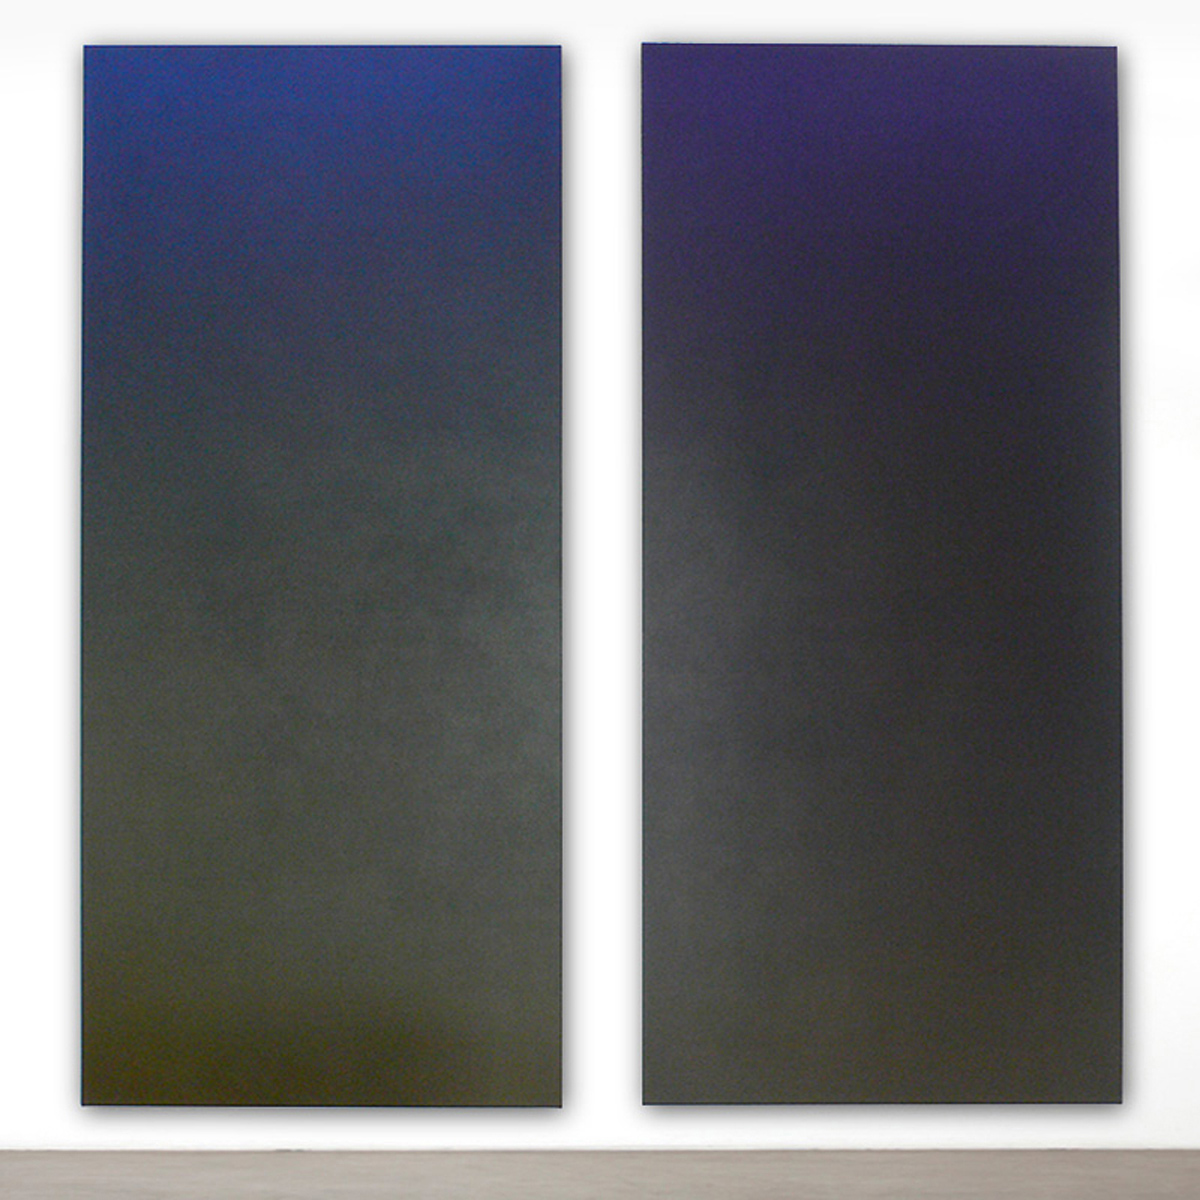 Core (Blue Orange) and Laden (Yellow Violet), Black Light Series, 2007, oil on canvas, 80 x 40 in. each (204 x 102 cm. each)